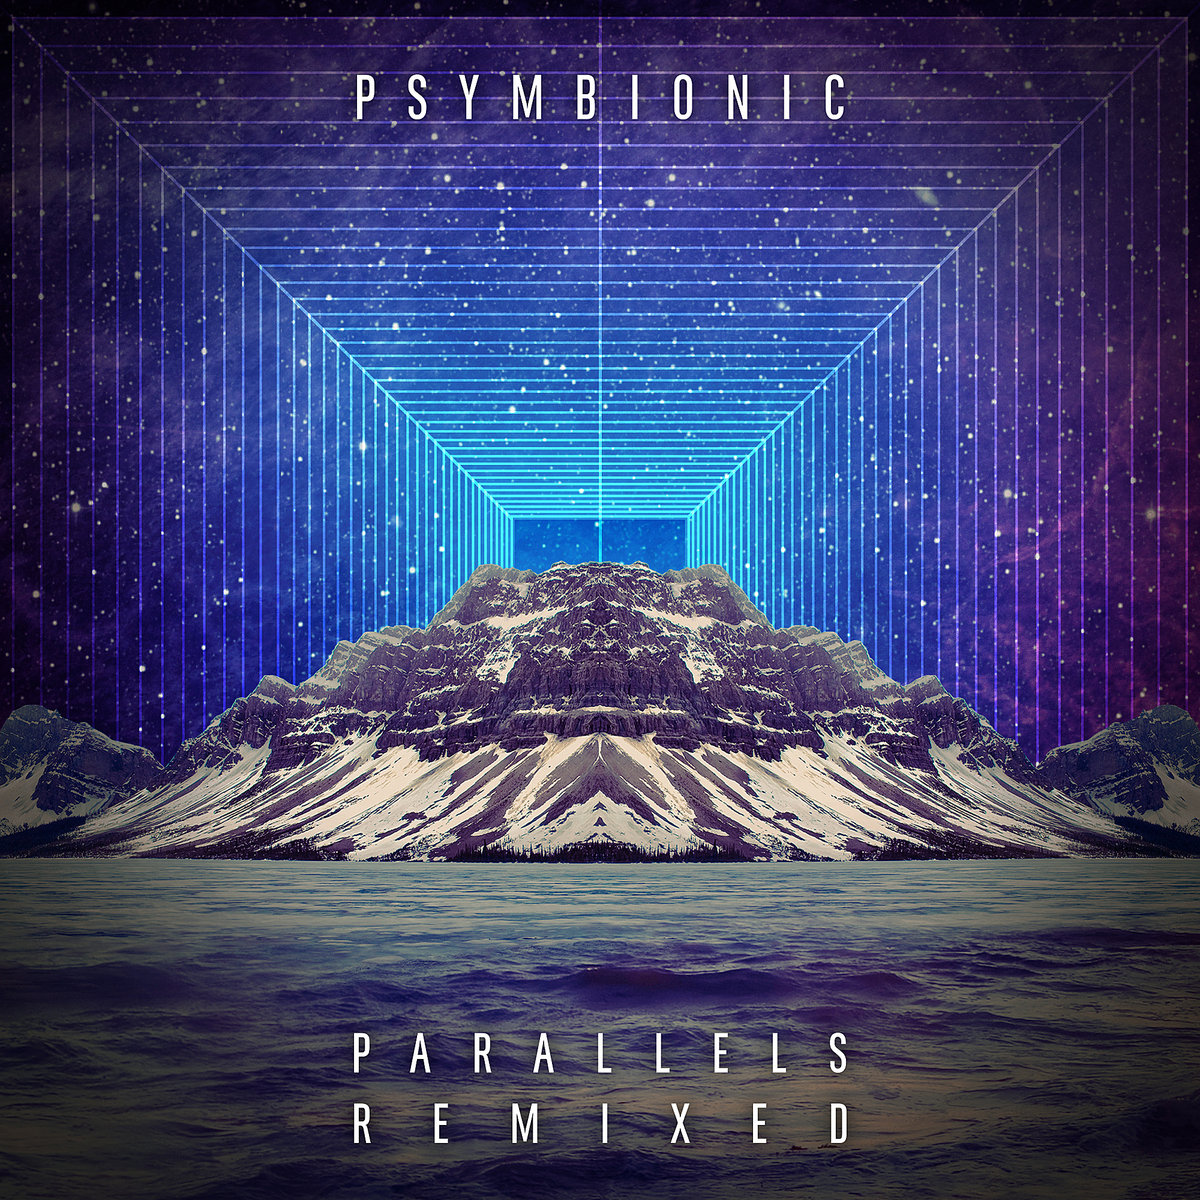 Psymbionic - Parallels Remixed @ 'Parallels Remixed' album (Austin)